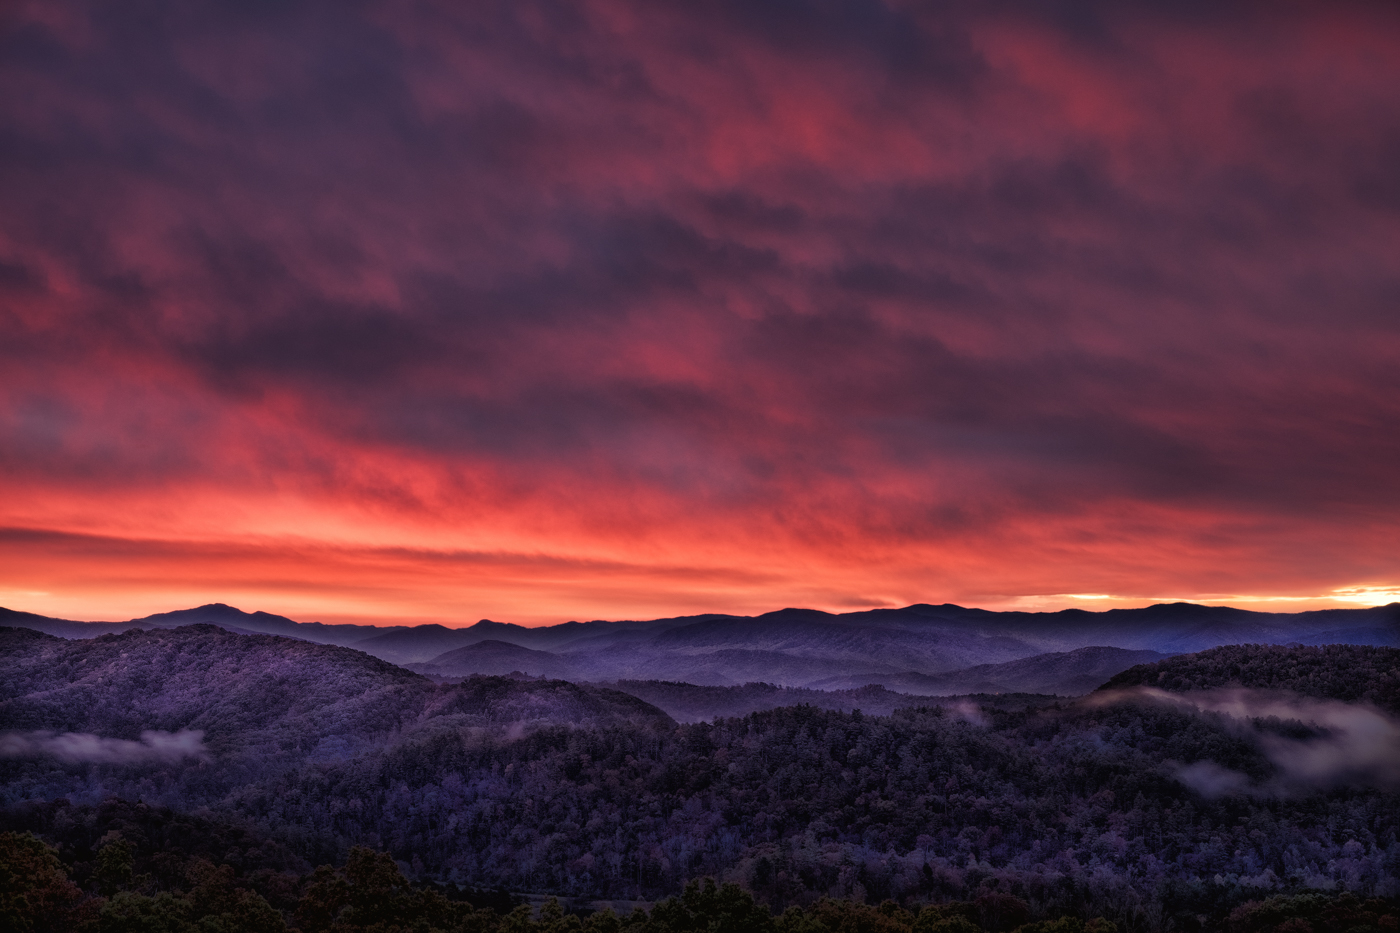 Sunrise Over the Smokey Mountains